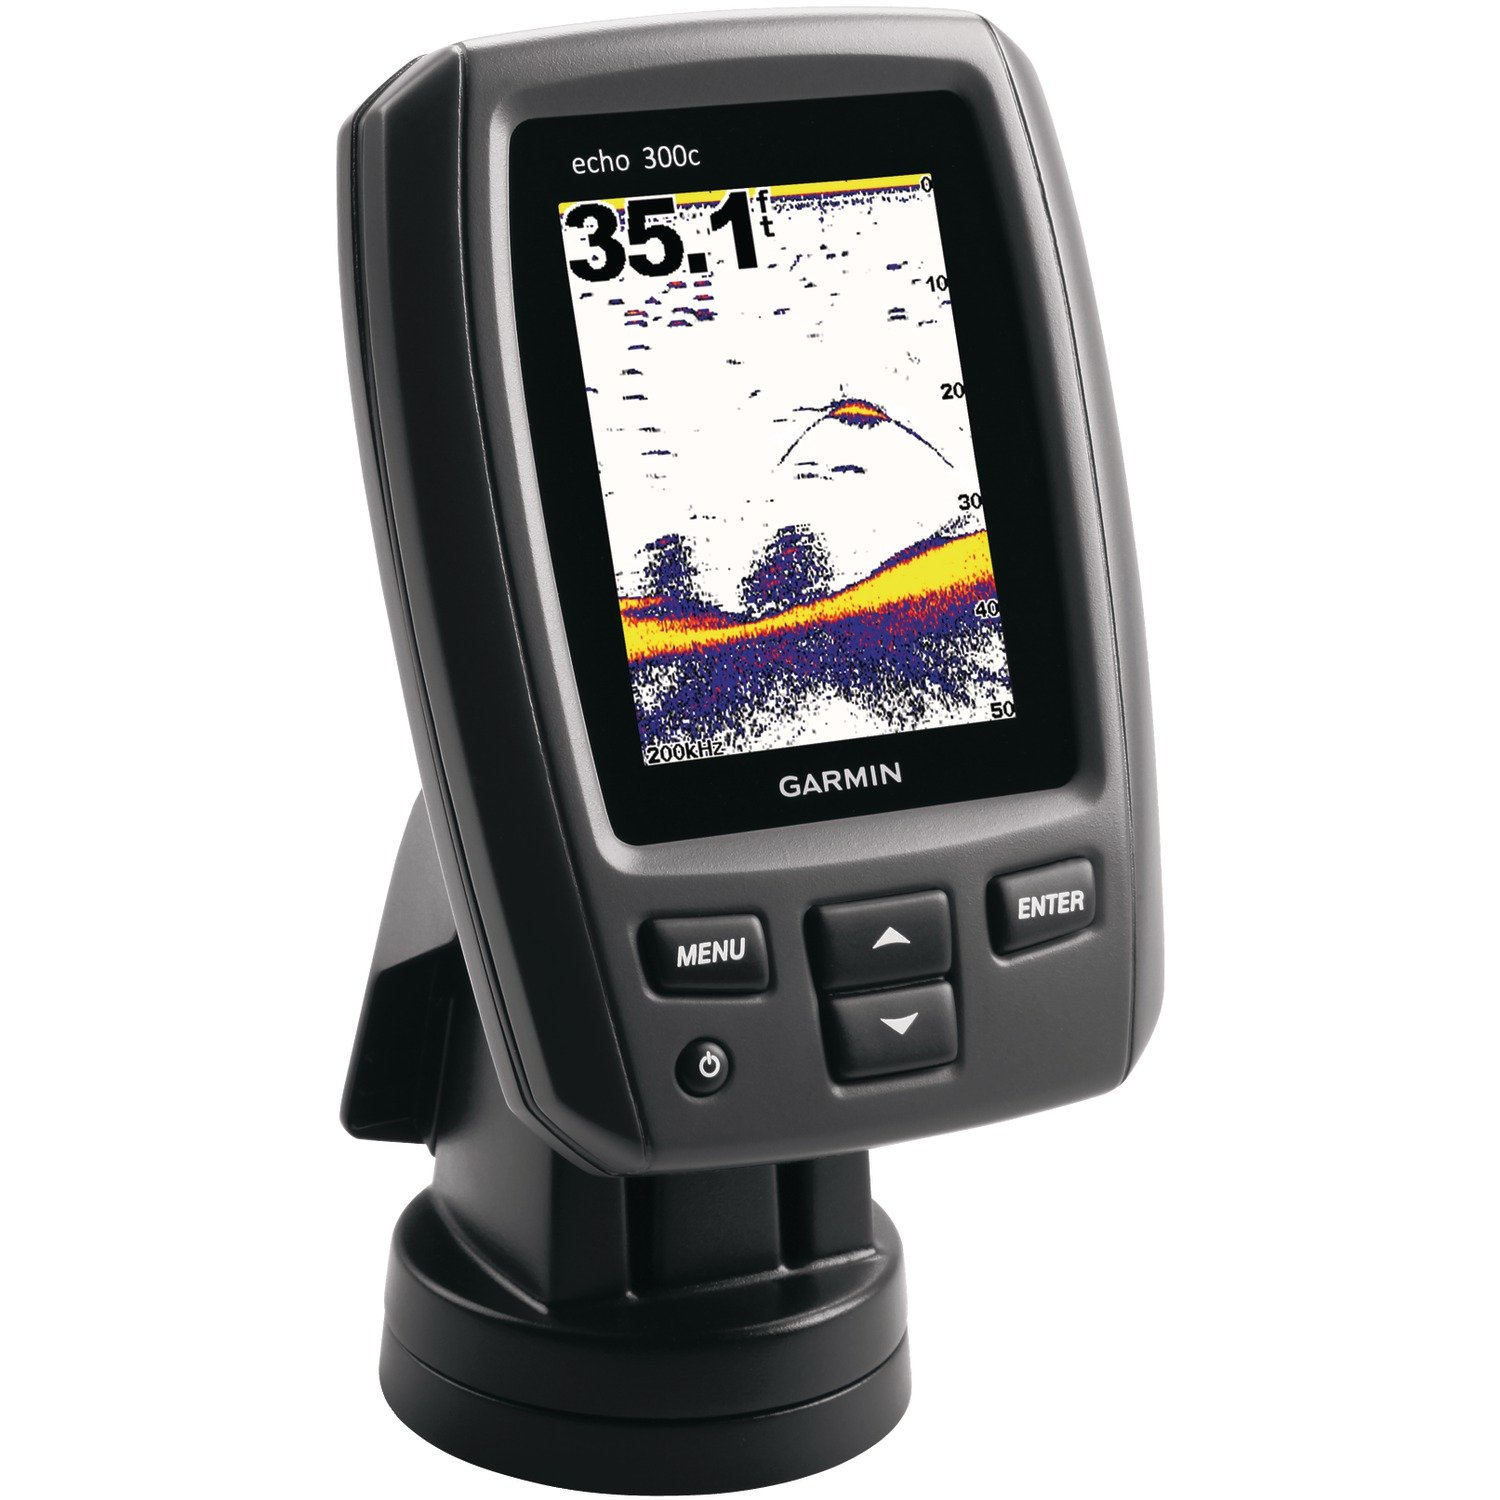 Garmin Fishfinder With Gps Wiring Diagram Opinions About 5212 Fish Finder Bgmt Data U2022 Rh App Carrot Ie 182 Schematic 7 Pin